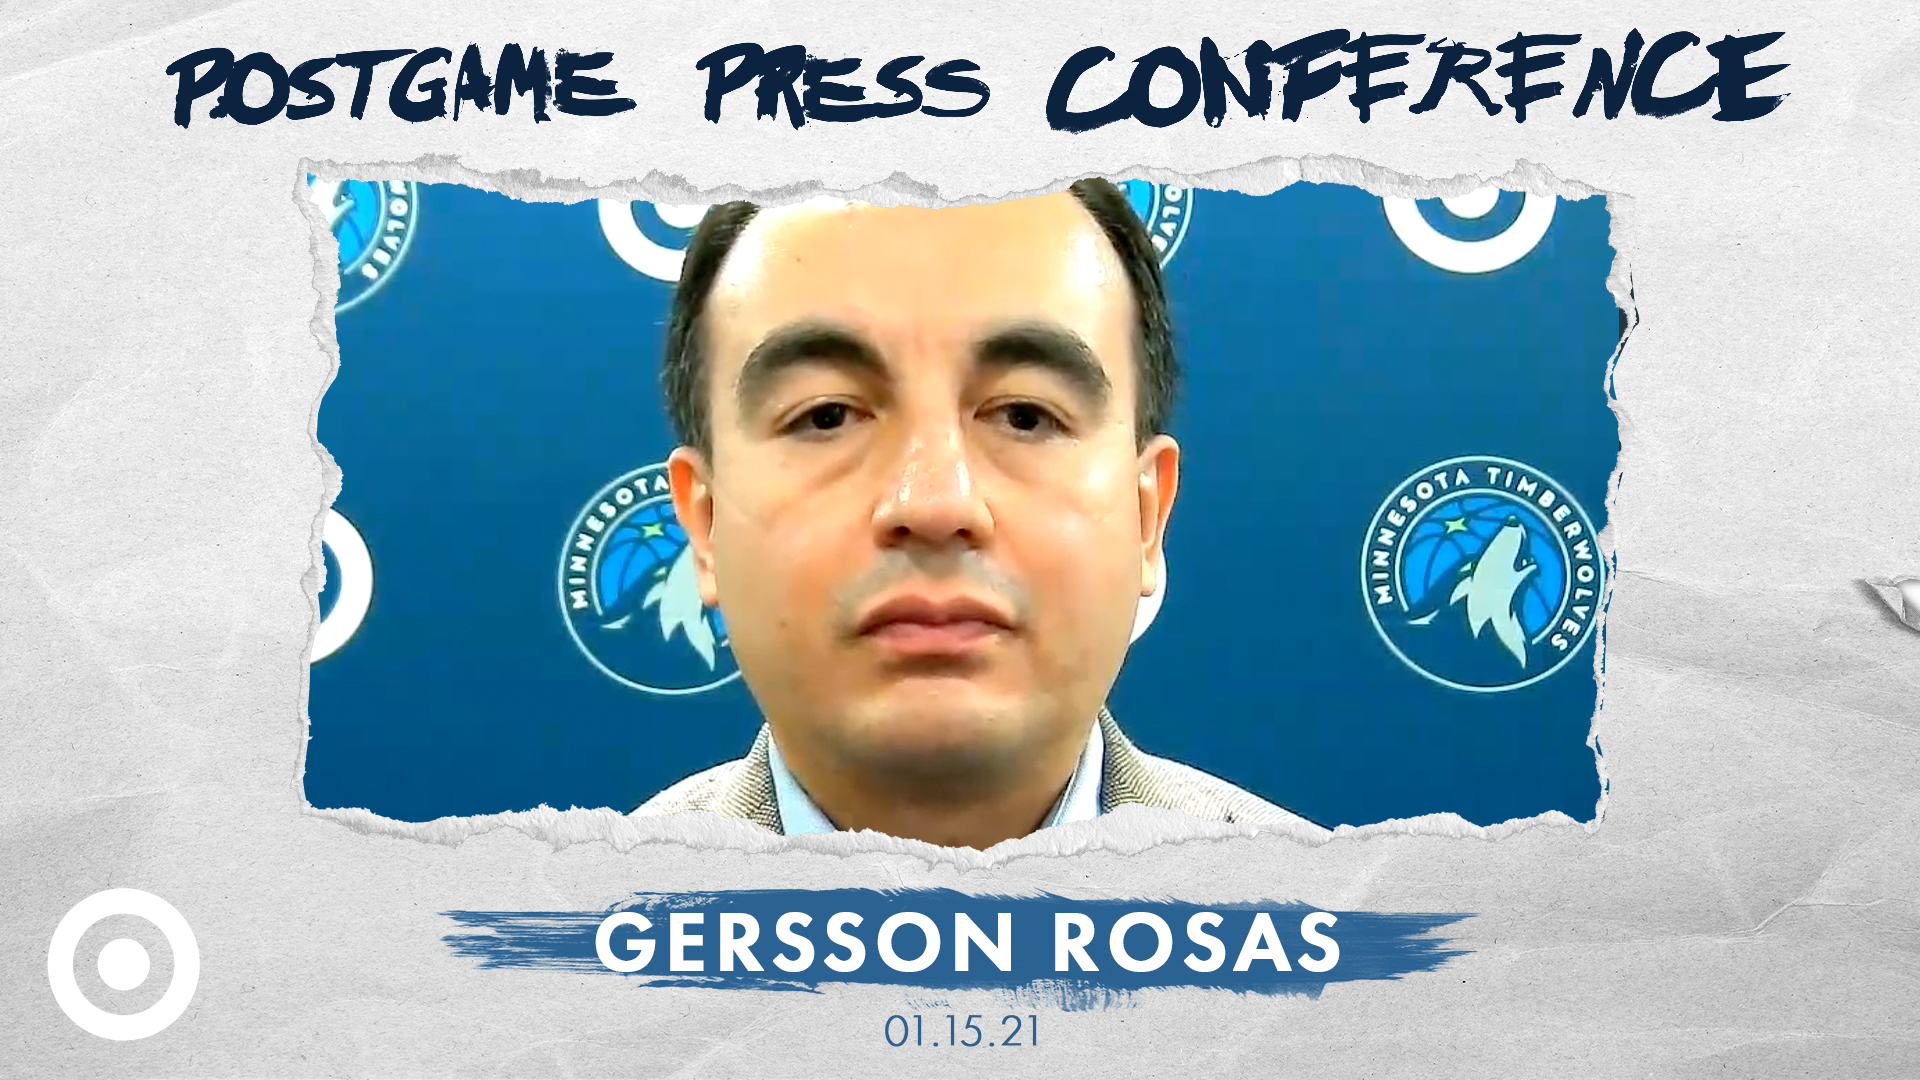 Gersson Rosas Game Postponement Press Conference - January 15, 2021